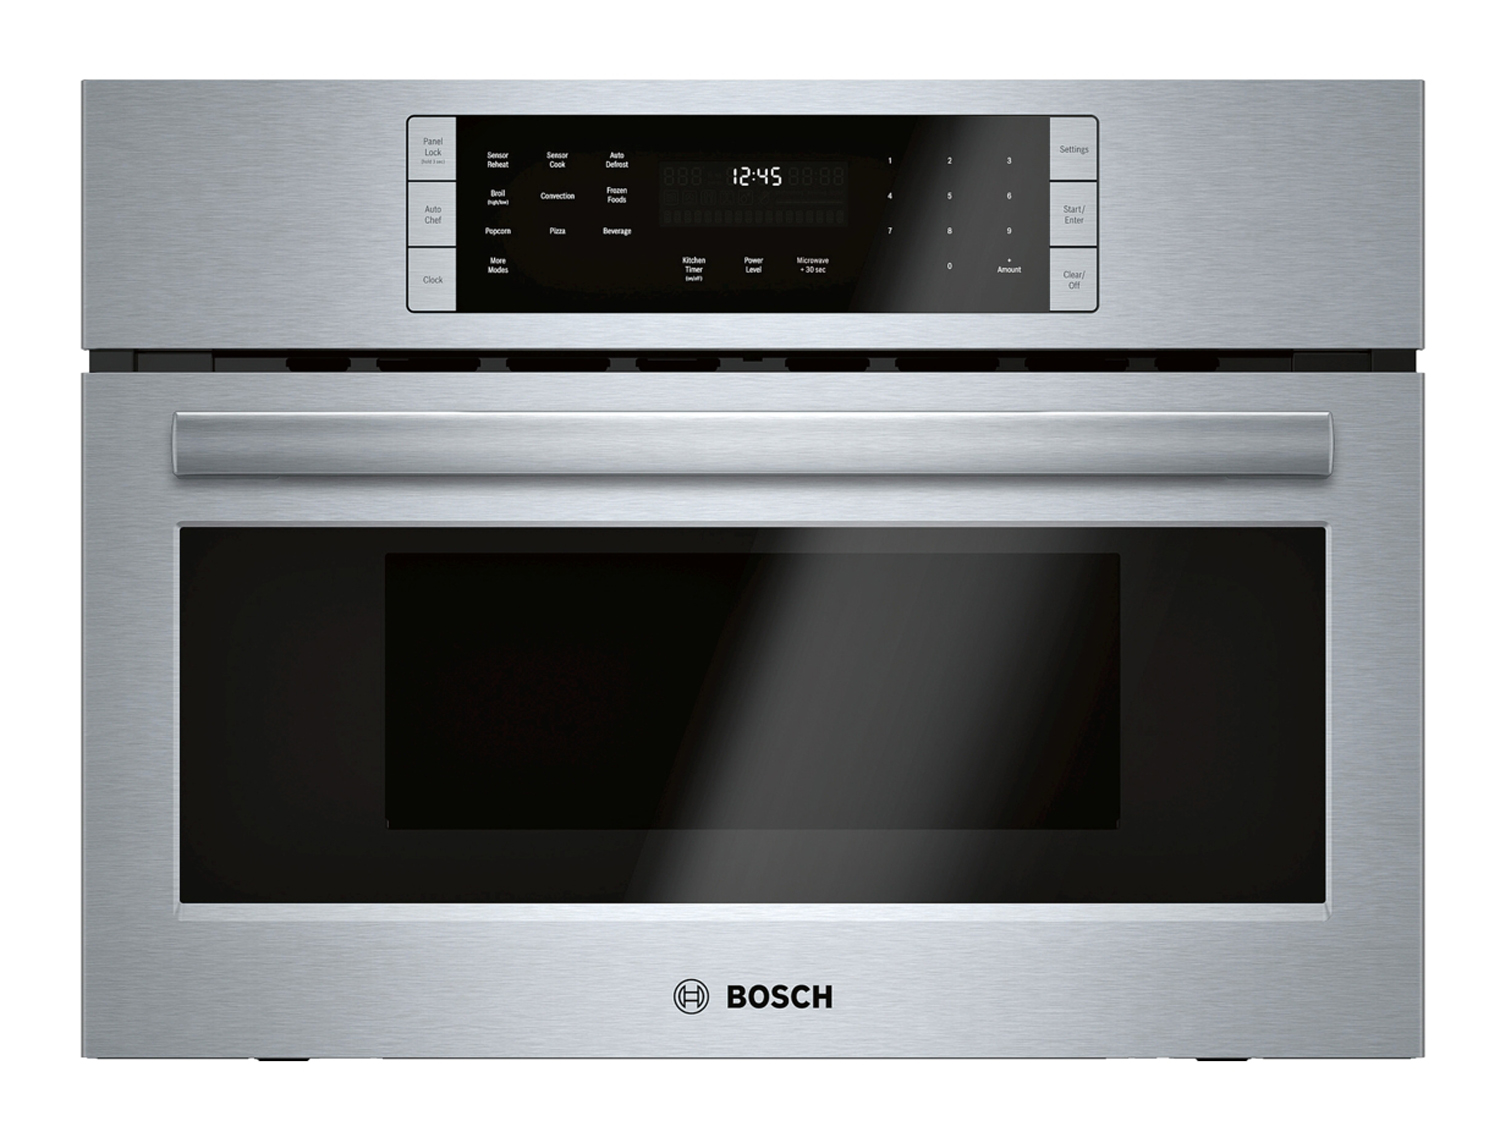 Bosch 800 Series 27 Quot Convection Speed Microwave Oven